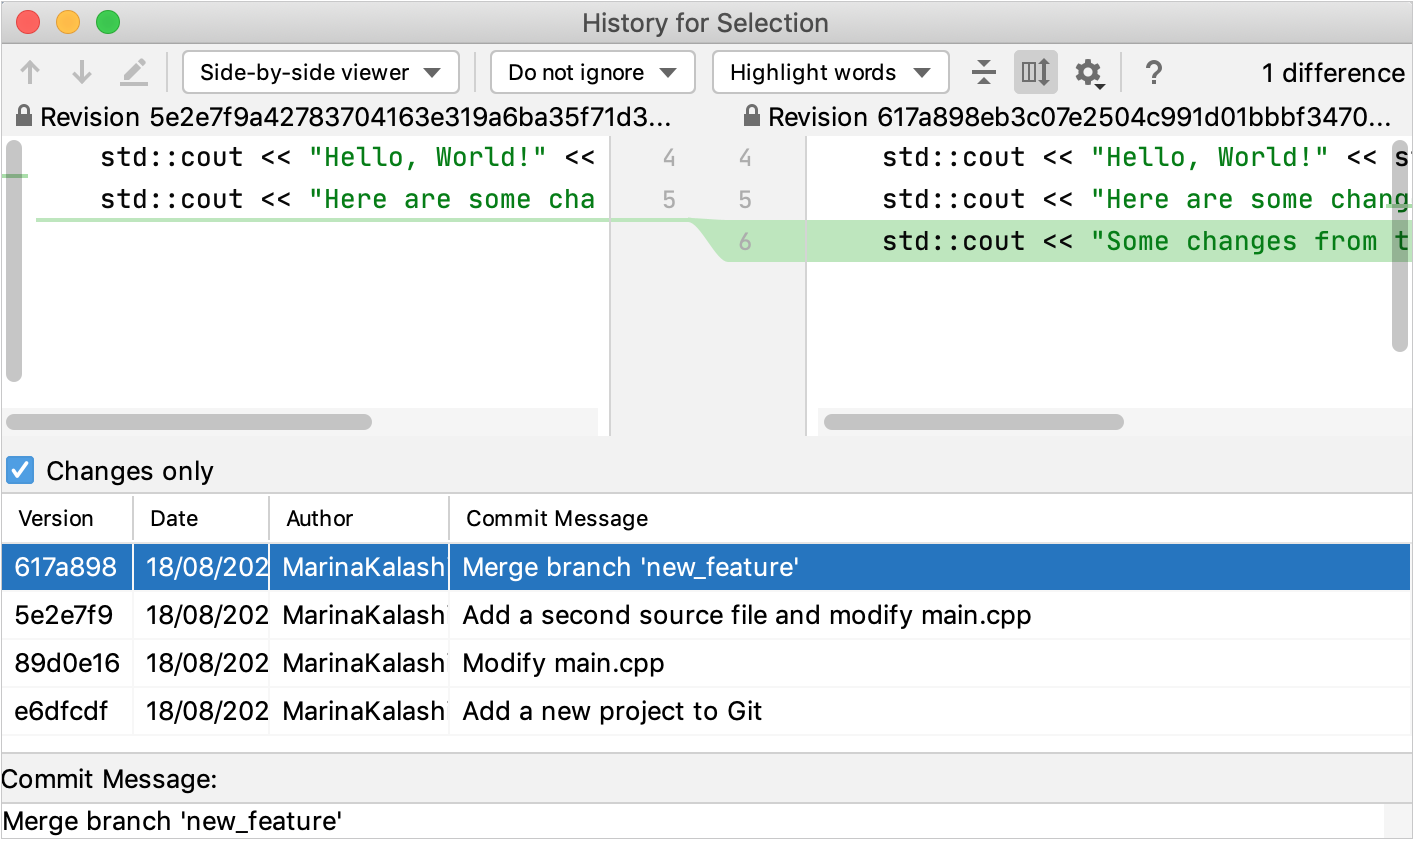 Git history for selection